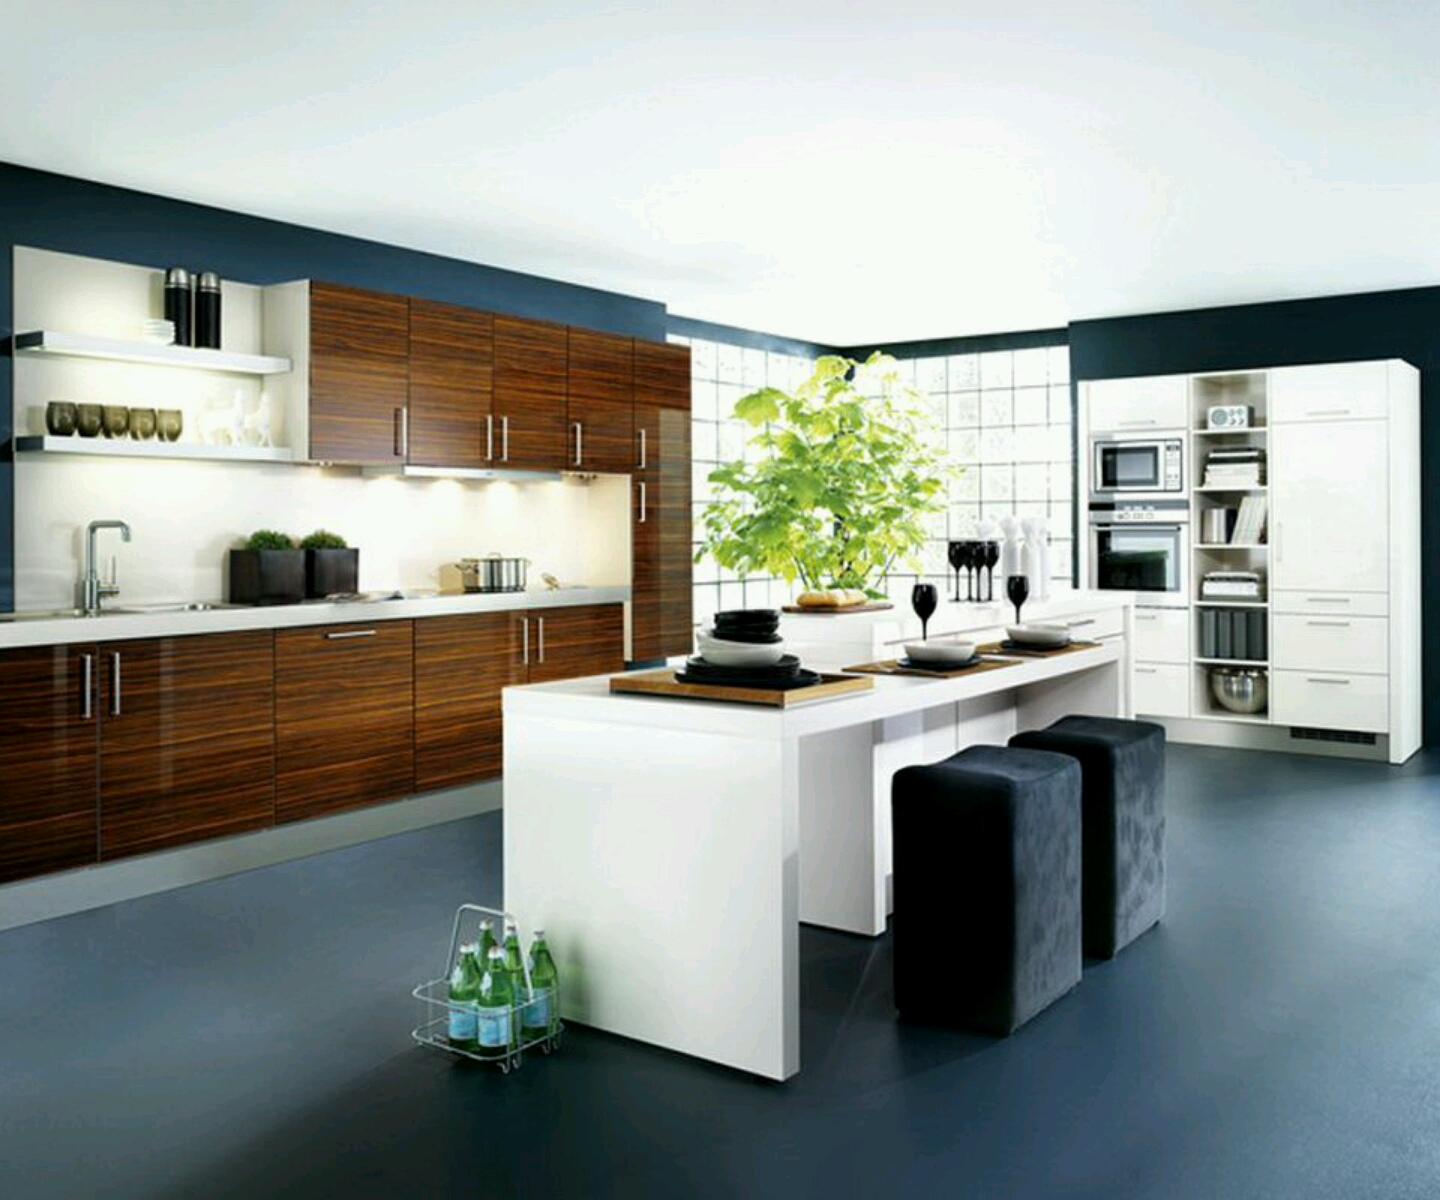 New Home Designs Latest Modern Home Kitchen Cabinet: New Home Designs Latest.: Kitchen Cabinets Designs Modern